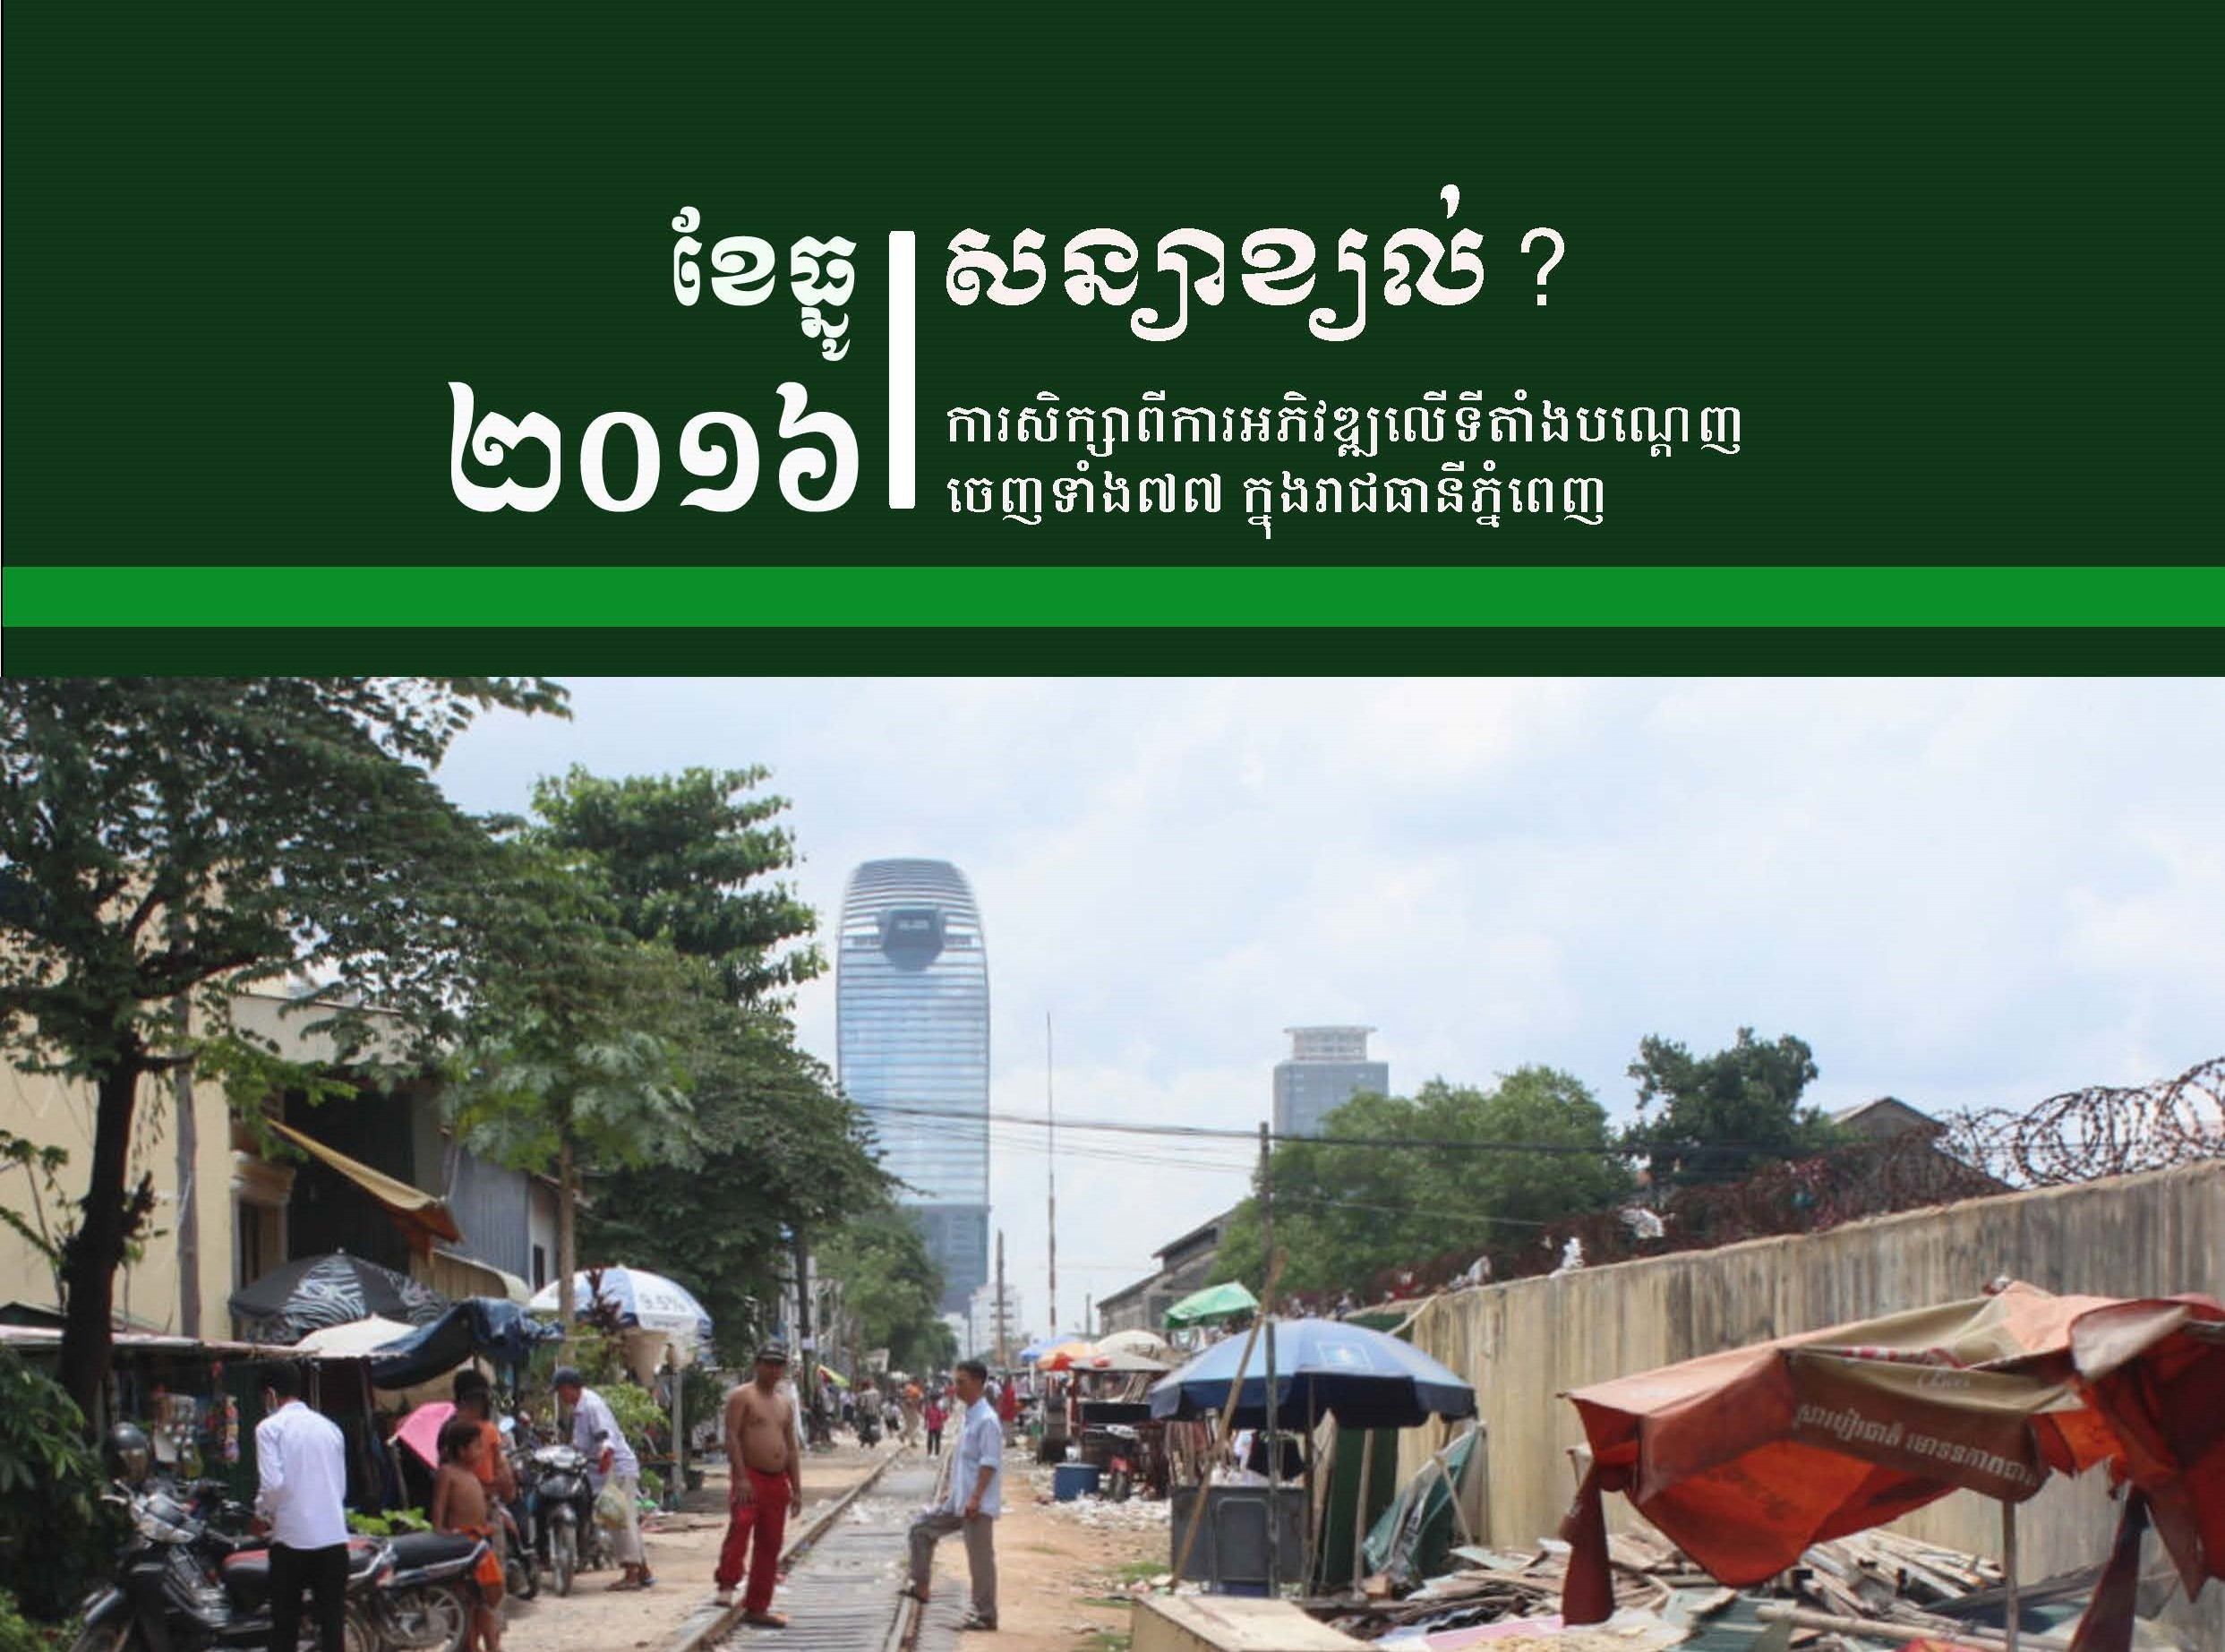 Promises Kept: A Study of the Development of 77 Eviction Sites in Phnom Penh